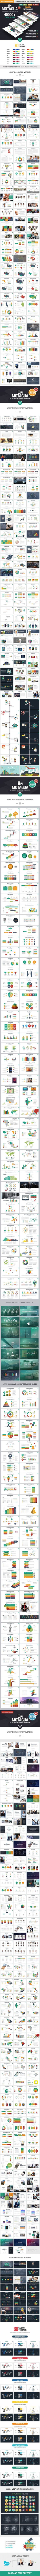 Impress your audience with this animated PPT Template. Motagua Powerpoint Template it comes with 40,000 total slides, this is the best selling #1 PowerPoint Template of Graphicriver of all times This presentation template included handmade Infographics for Marketing, Social Media, SEO, Company Profile, USA, Canada and World Maps, Data Driven, Flowcharts, Mindmaps, Tables, SWOT Analysis, funnel diagram, powerpoint timeline template, powerpoint background, Team and Many More!.